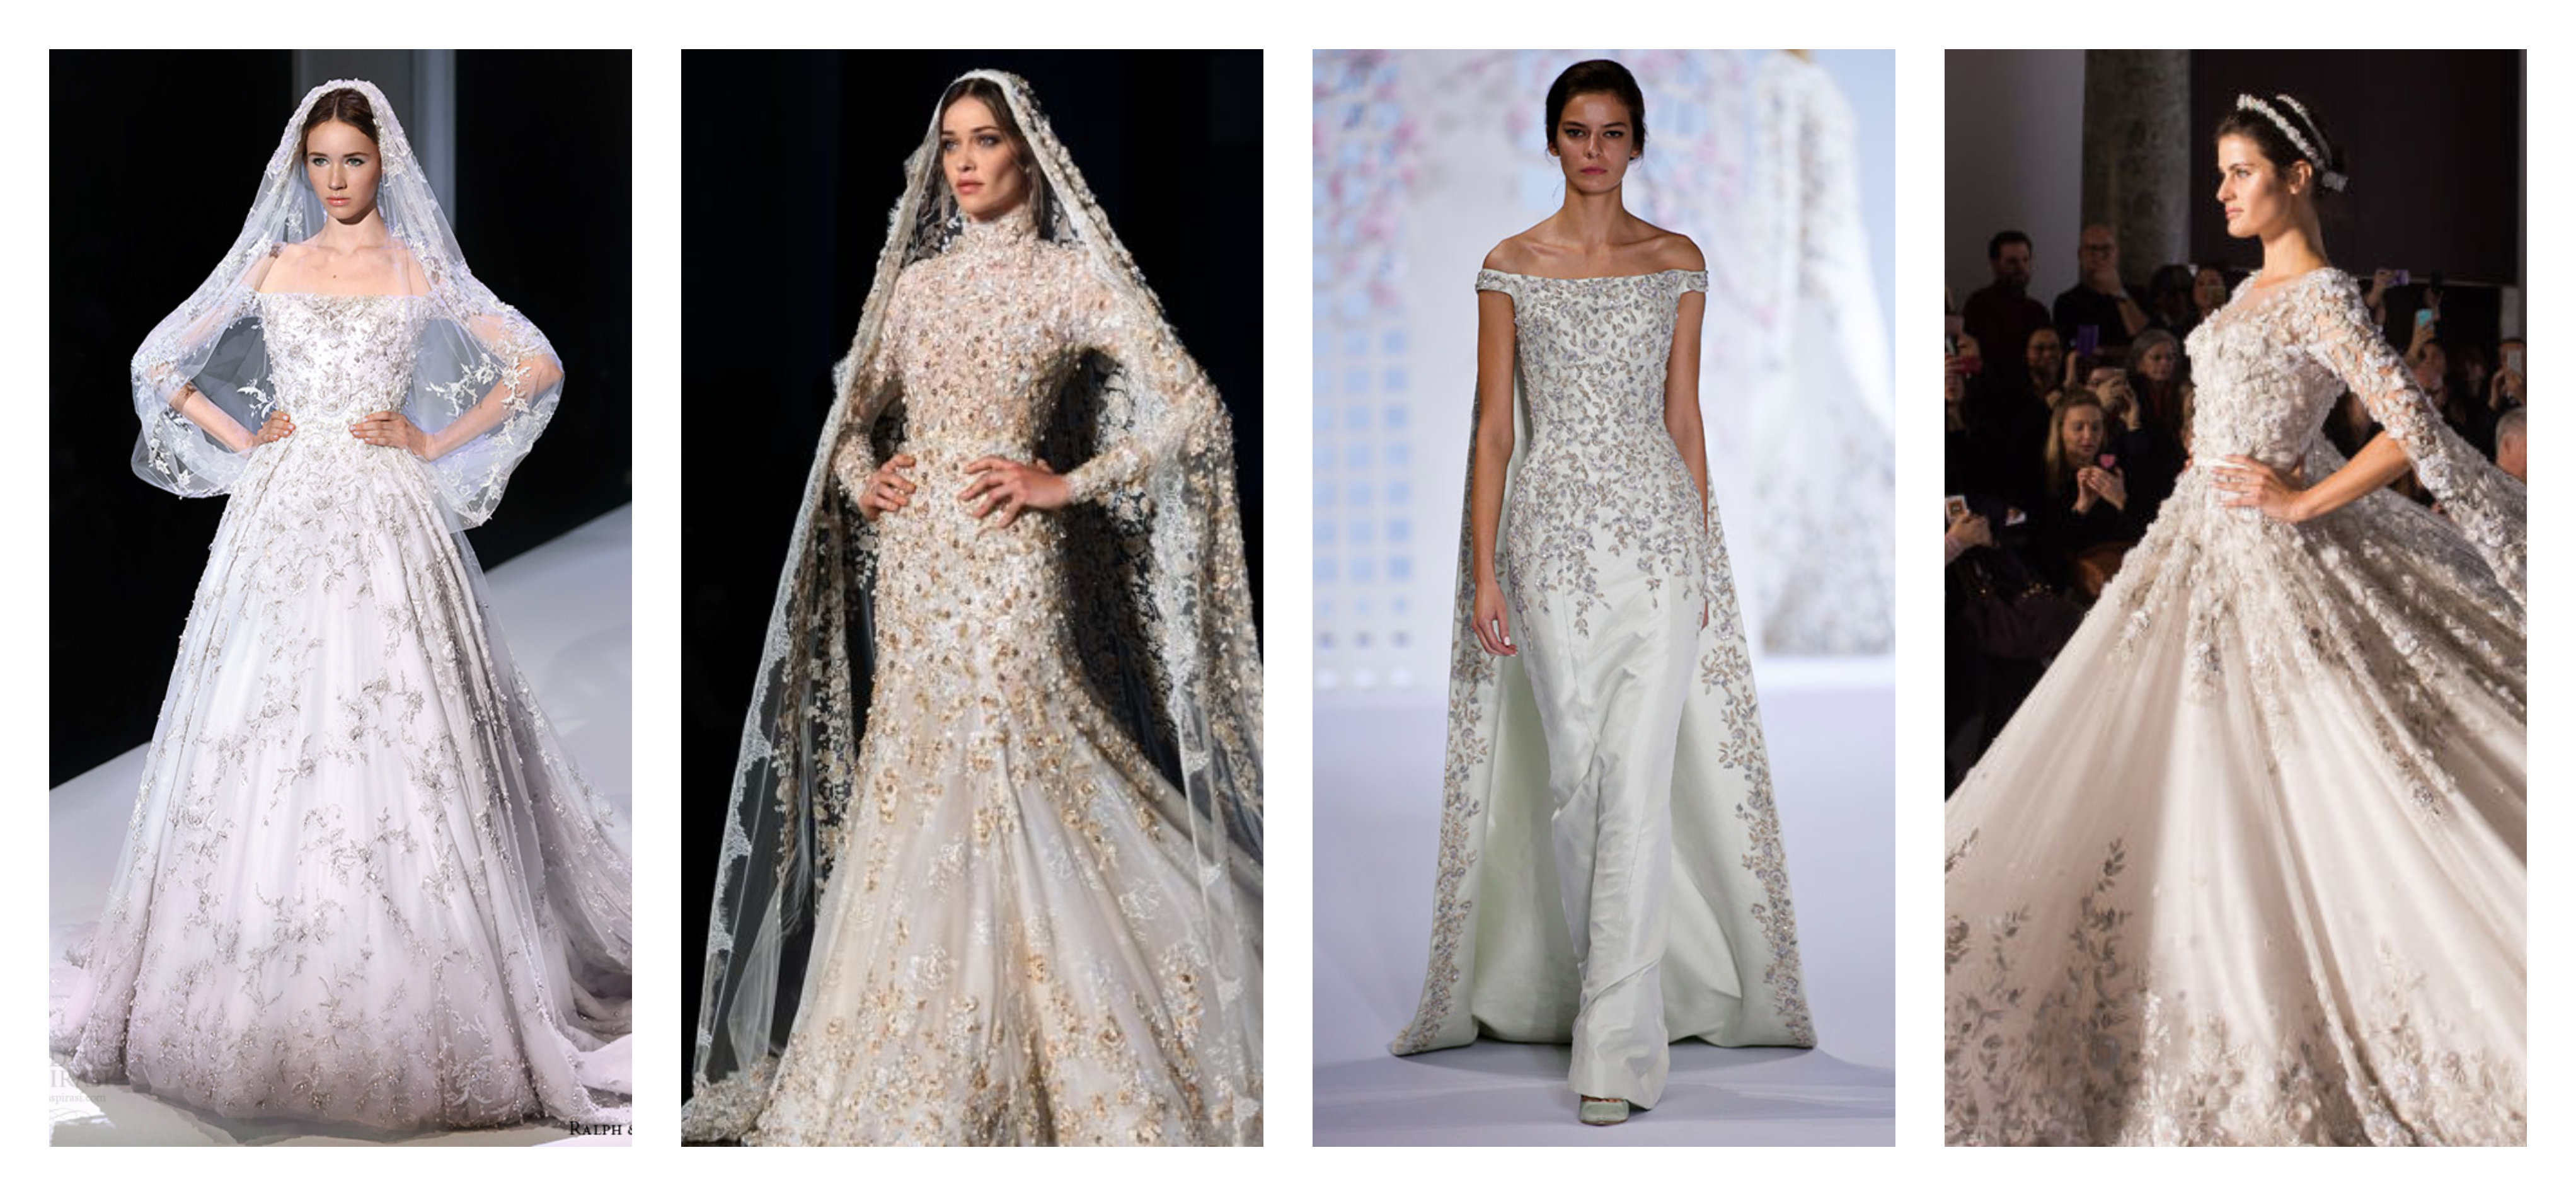 Ralph-&-Russo-Wedding-Dresses-Meghan-Markle